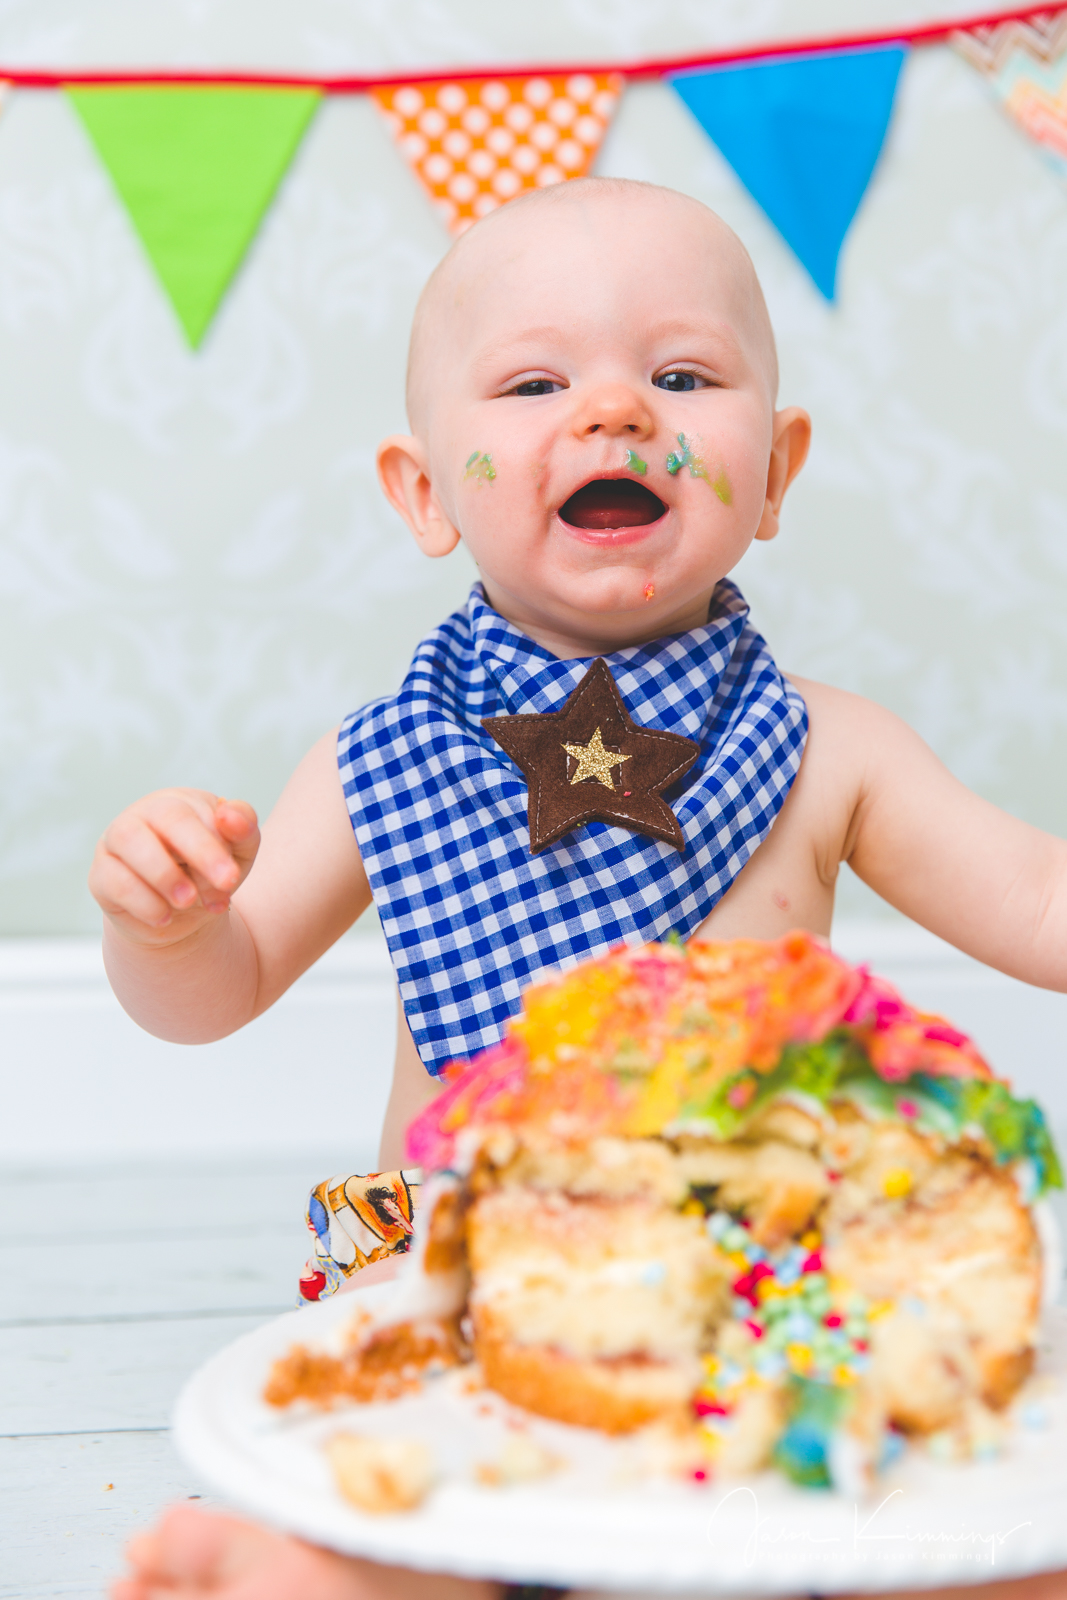 Cake-smash-photography-west-lothian-edinburgh-glasgow-5.jpg